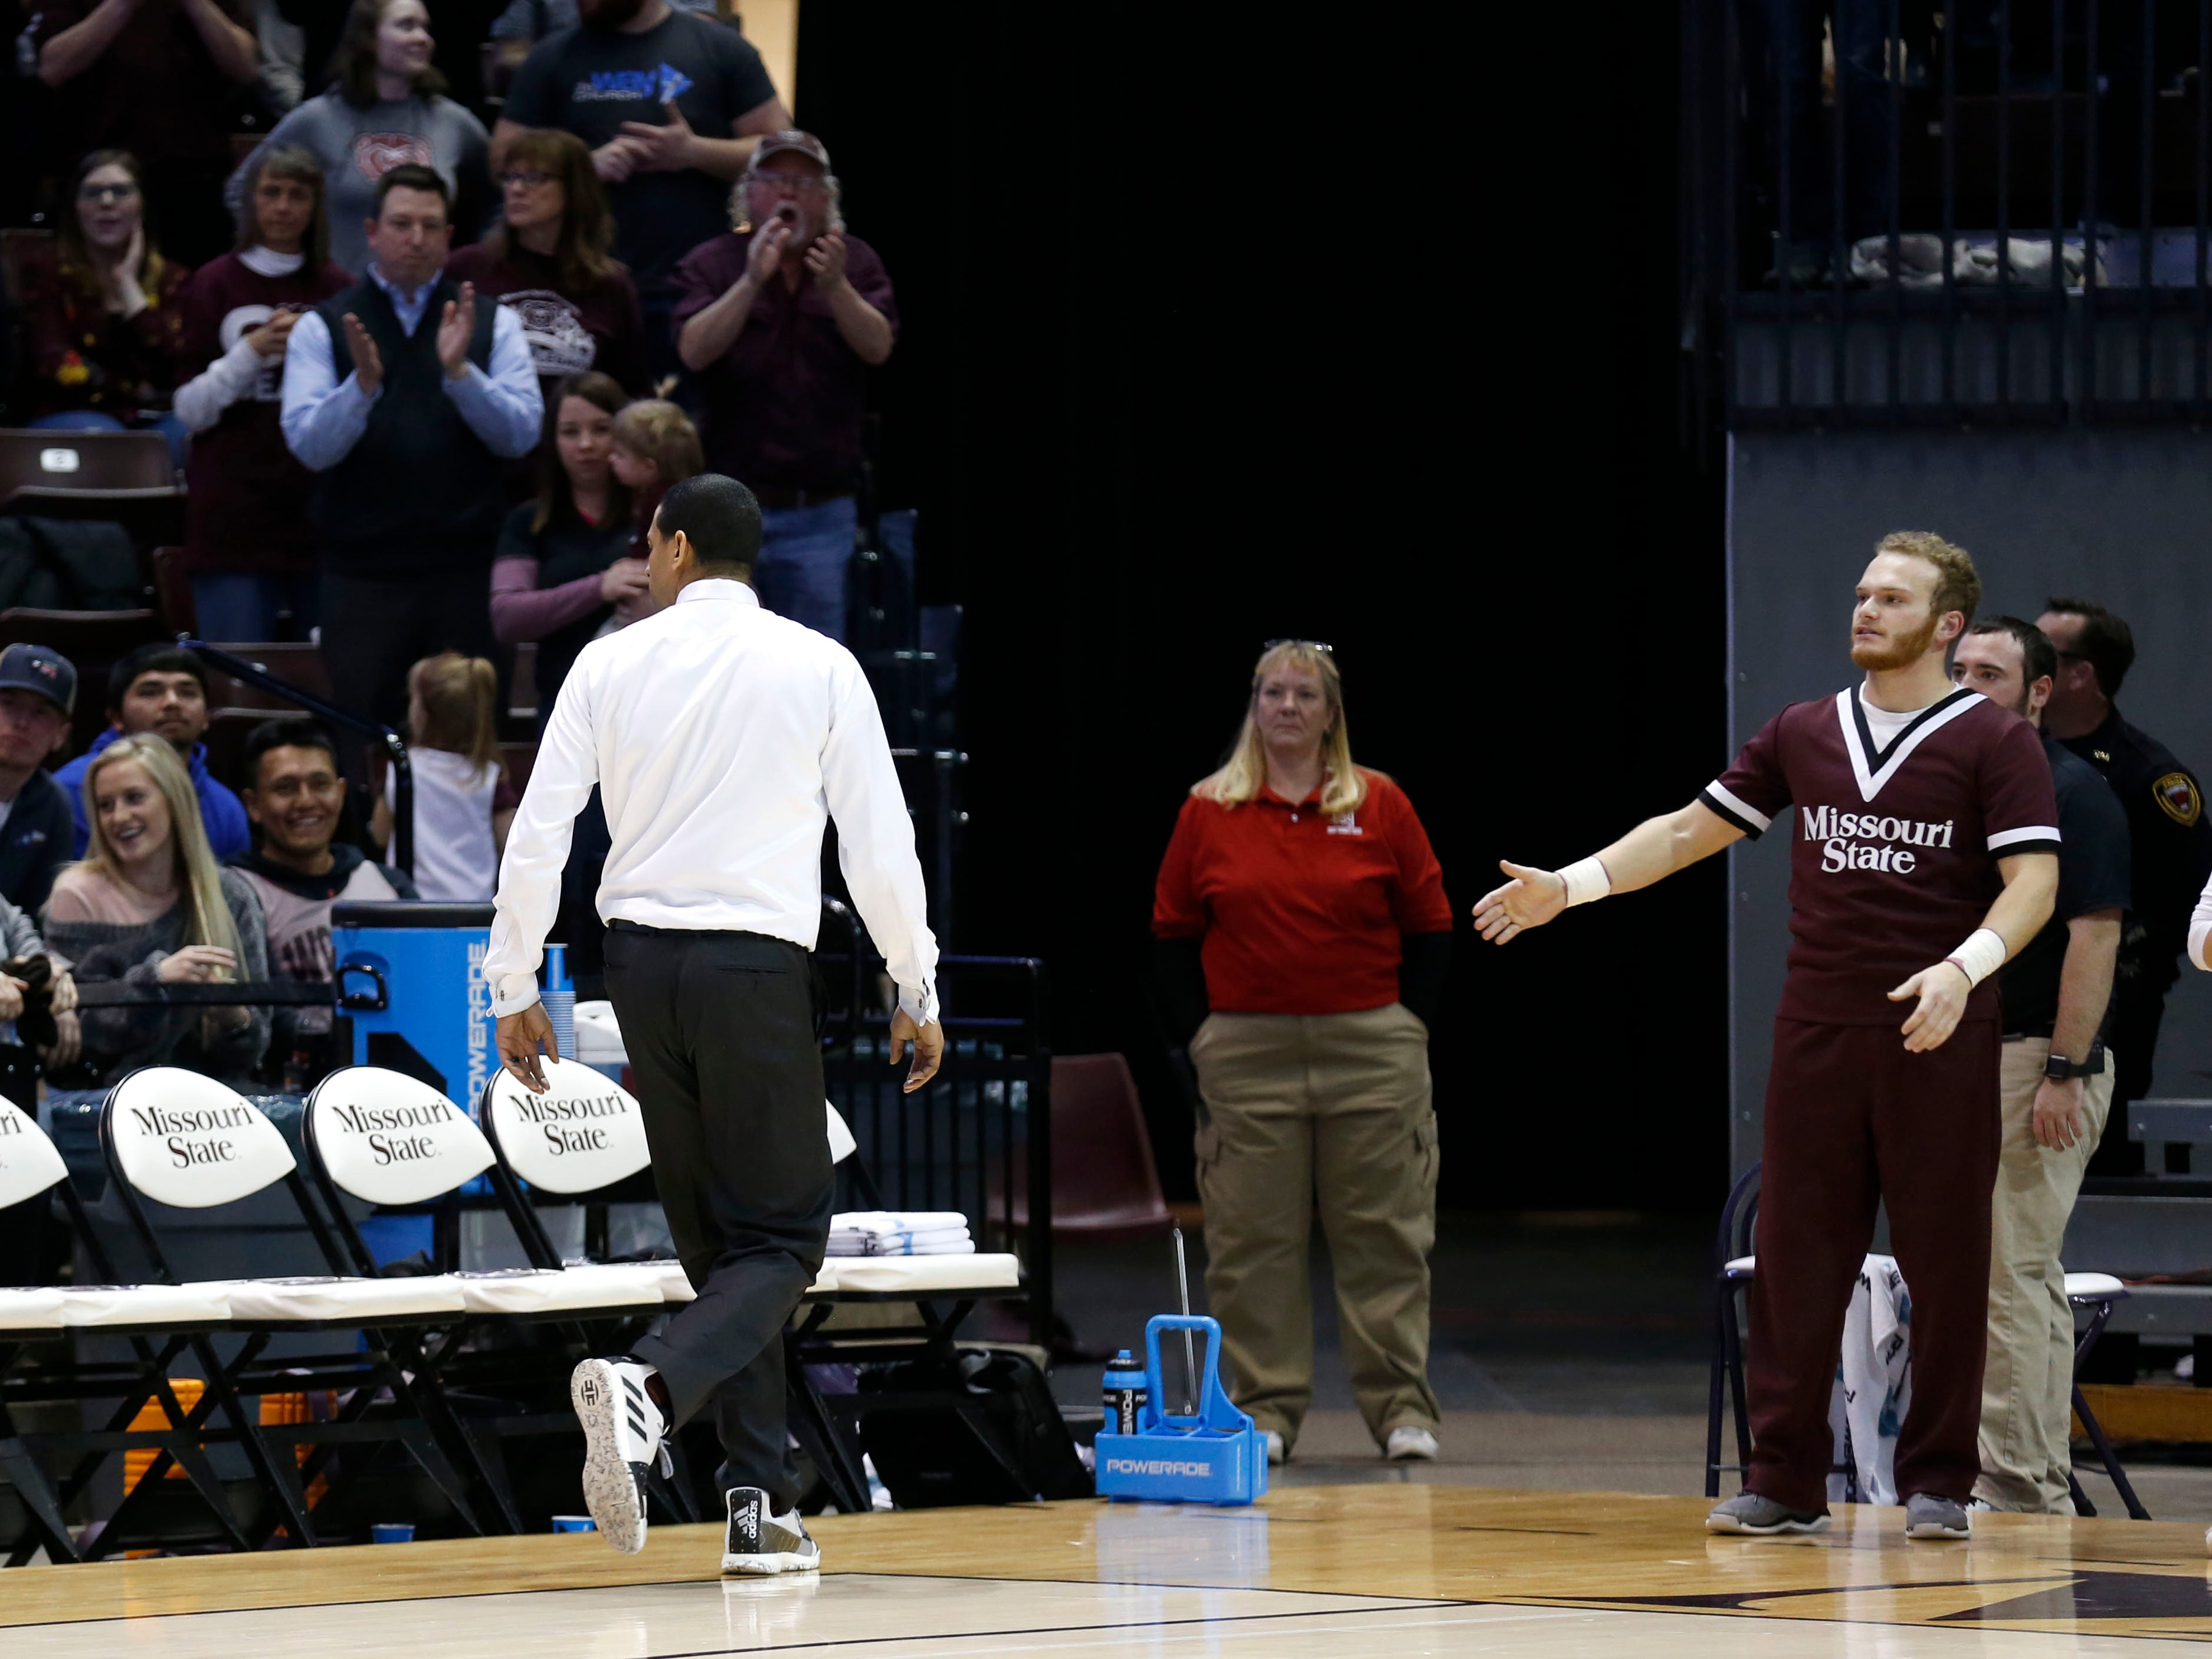 Dana Ford exits JQH Arena after being ejected during a game against the UNI Panthers on Wednesday, Feb. 20, 2019.